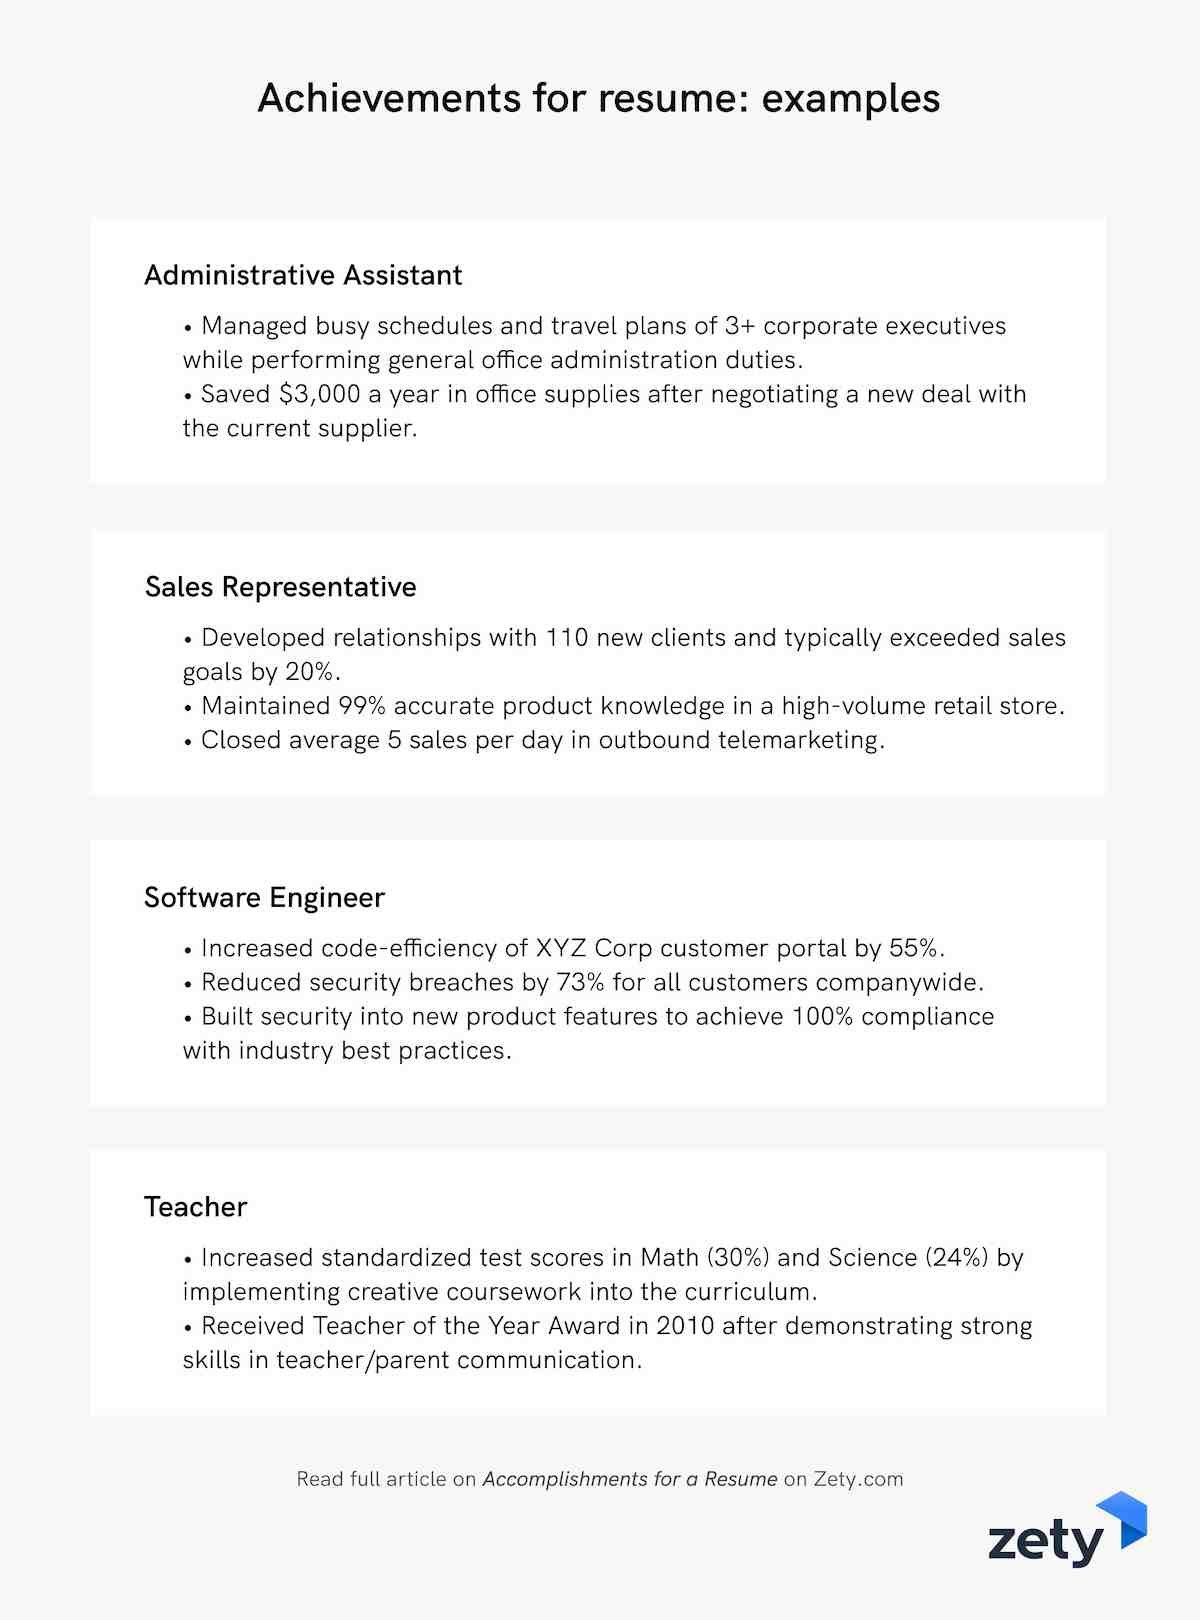 accomplishments for resume achievements awards academic examples good color schemes Resume Academic Accomplishments Resume